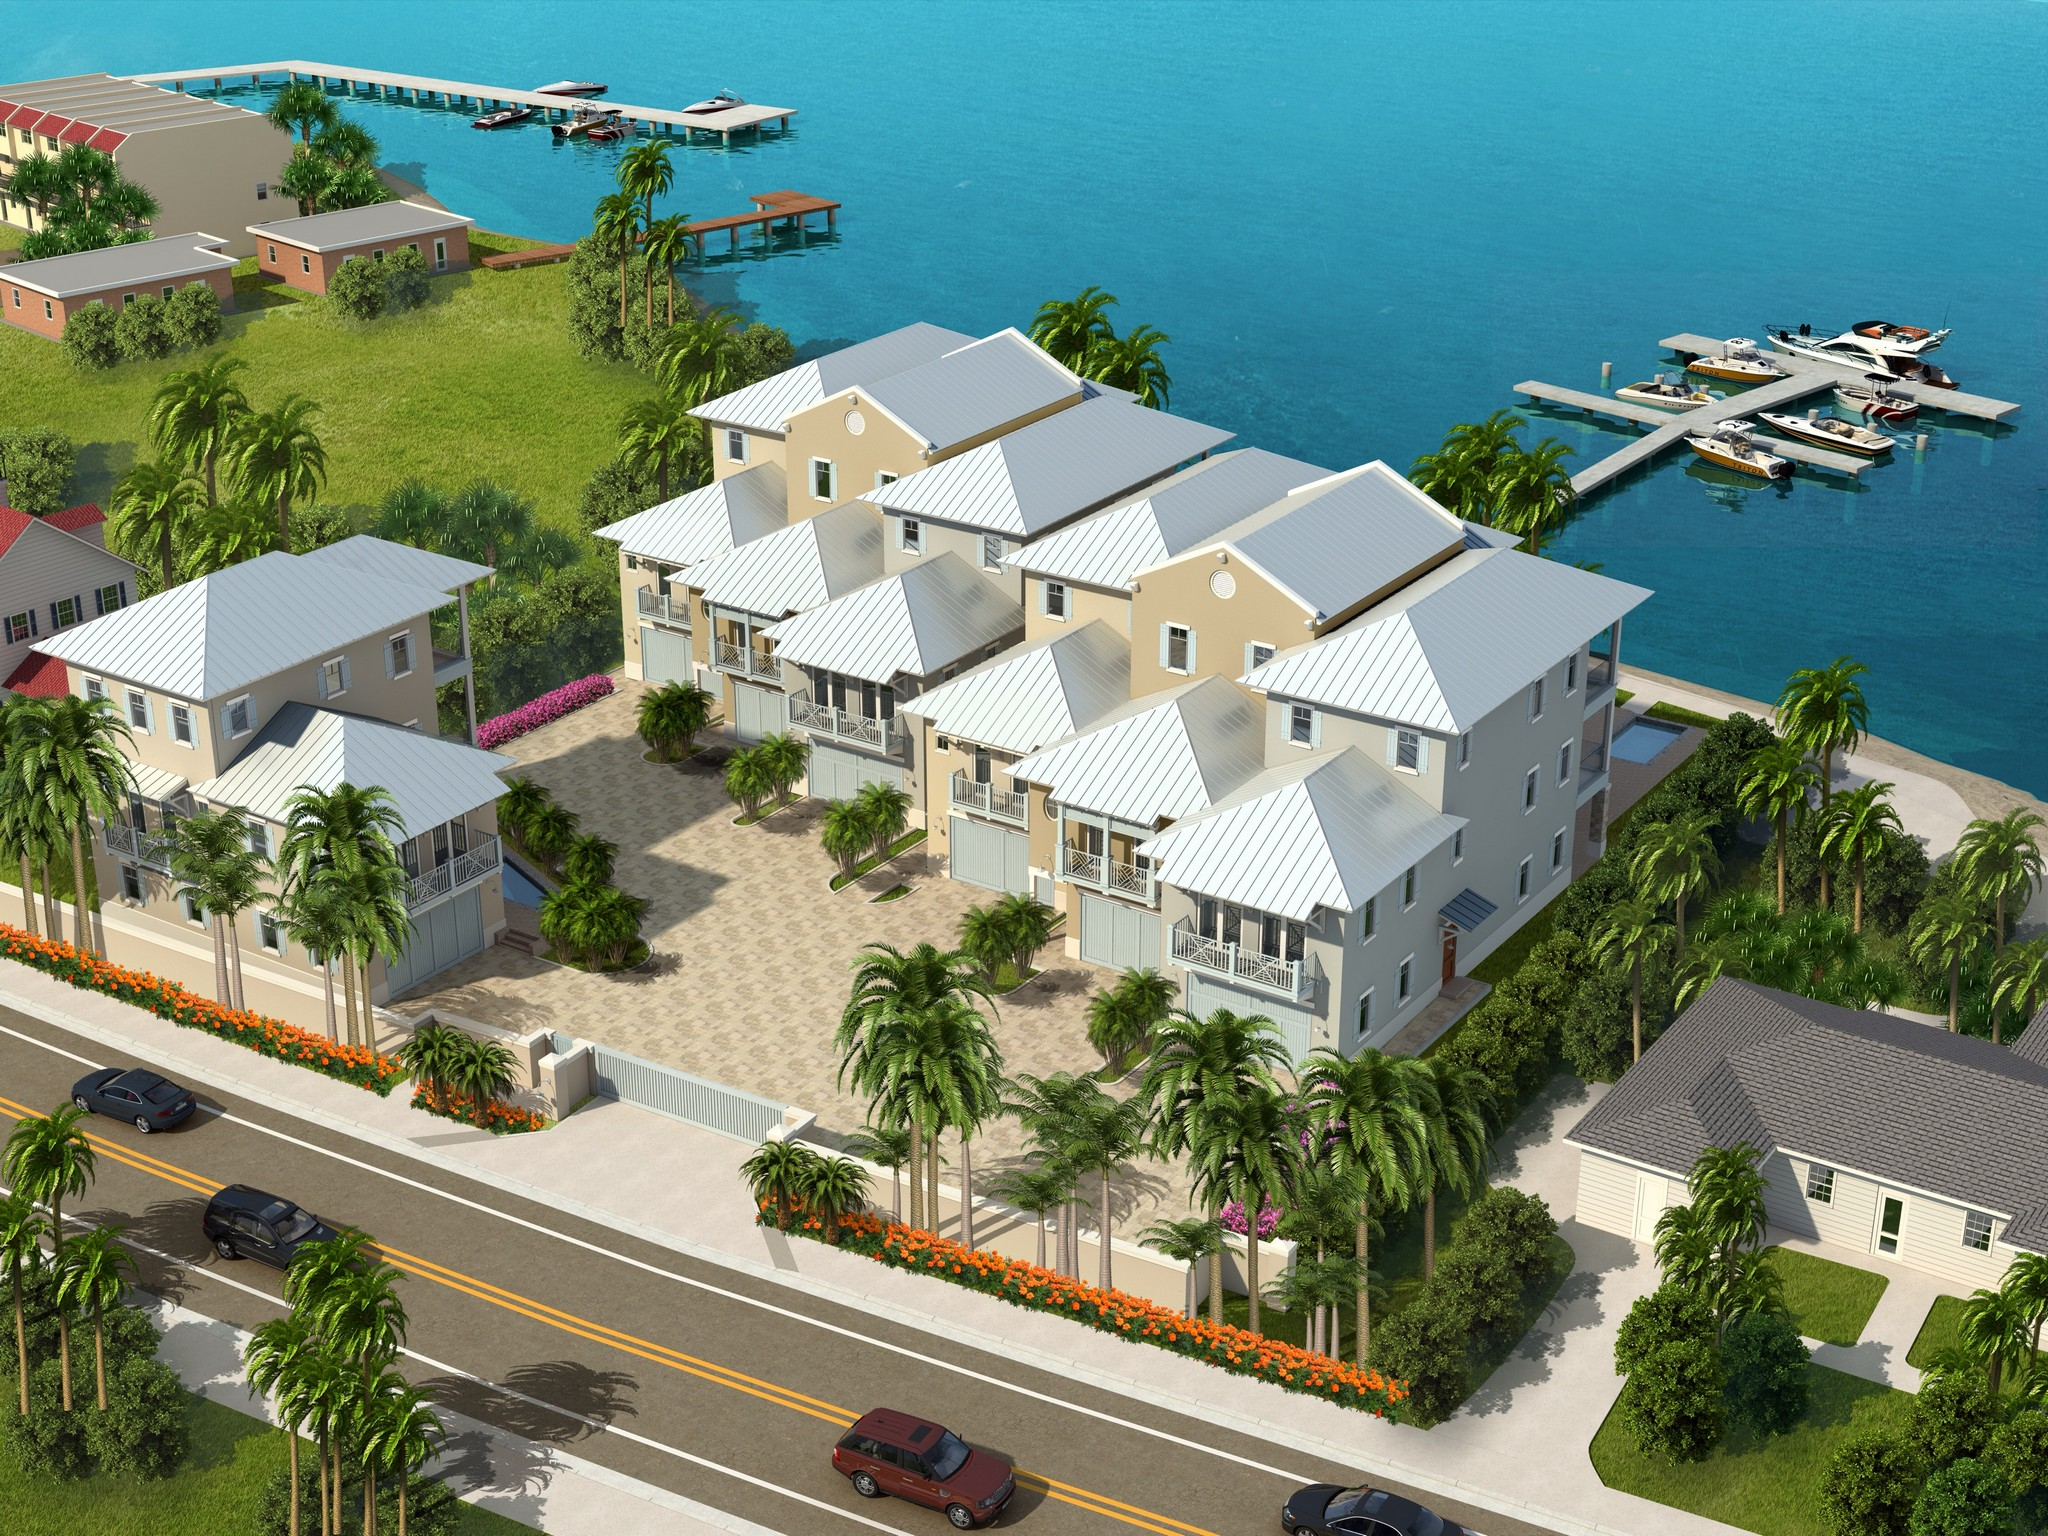 Residência urbana para Venda às Riverfront Ultra-luxury townhome 1502 Seaway Drive #5 Fort Pierce, Florida 34949 Estados Unidos